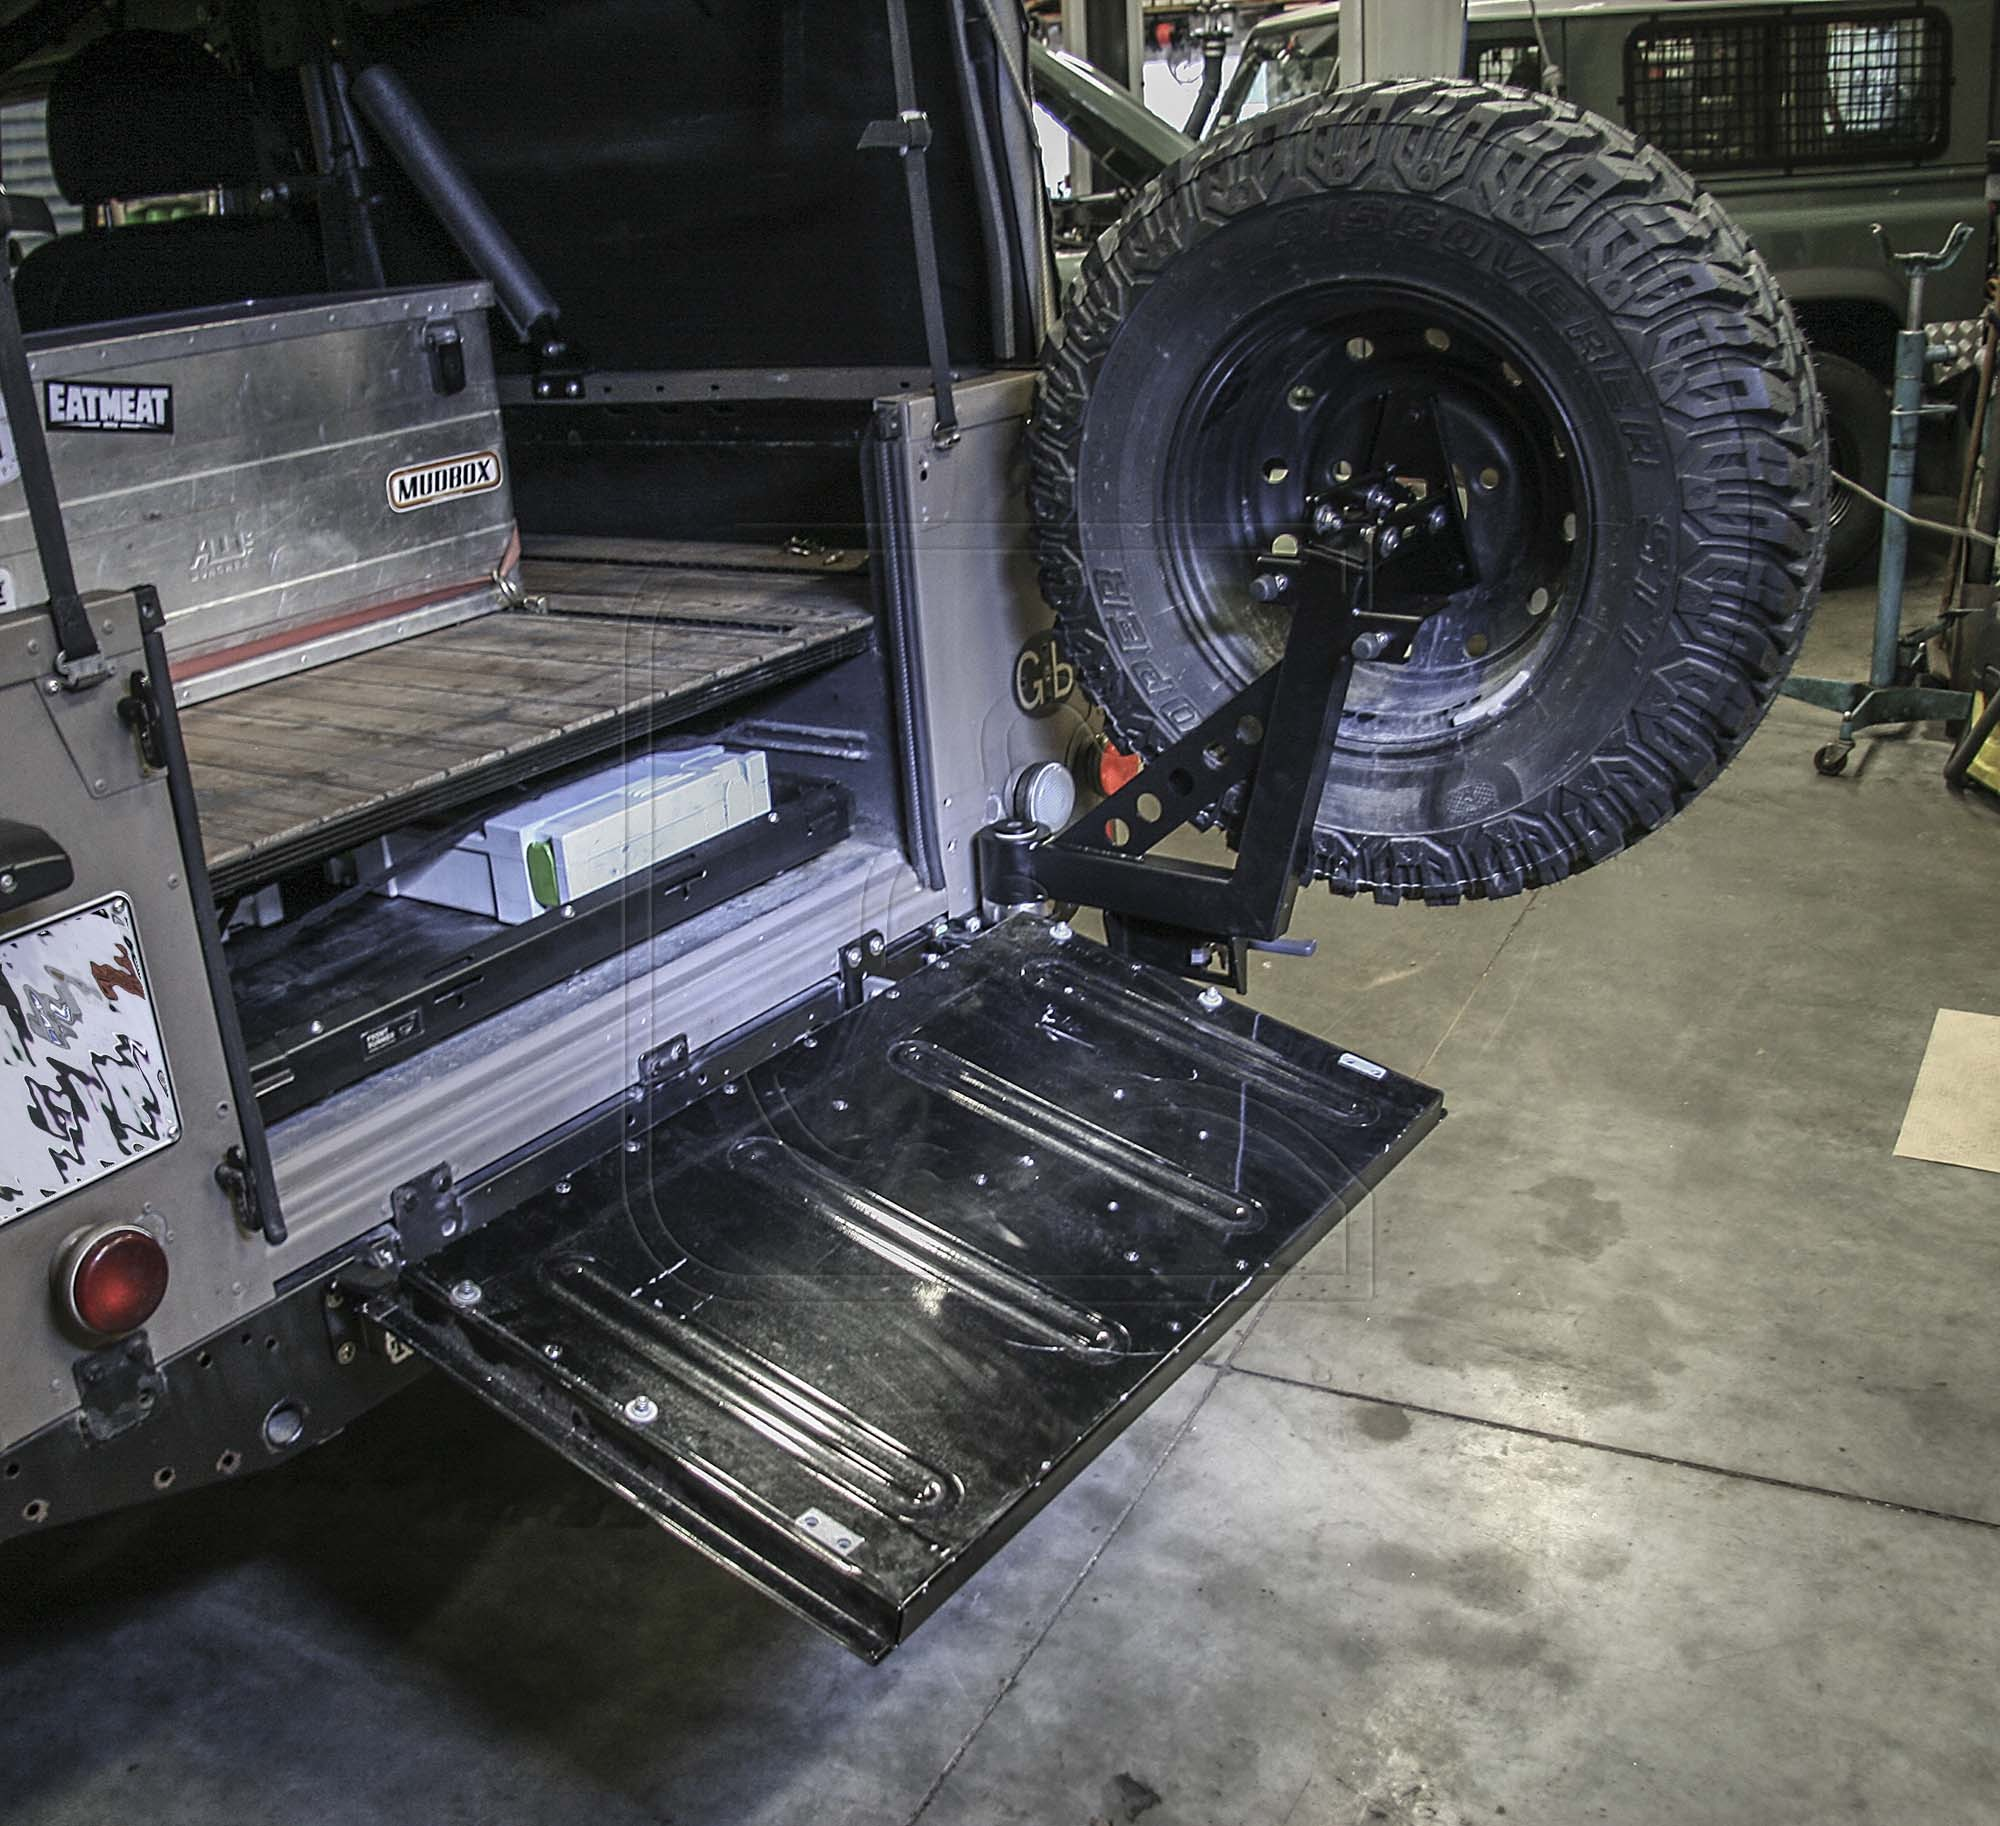 Defender Stainless Steel Spare Tire Carrier for Pickup / Soft-Top [***6-8 WEEK LEAD-TIME***]